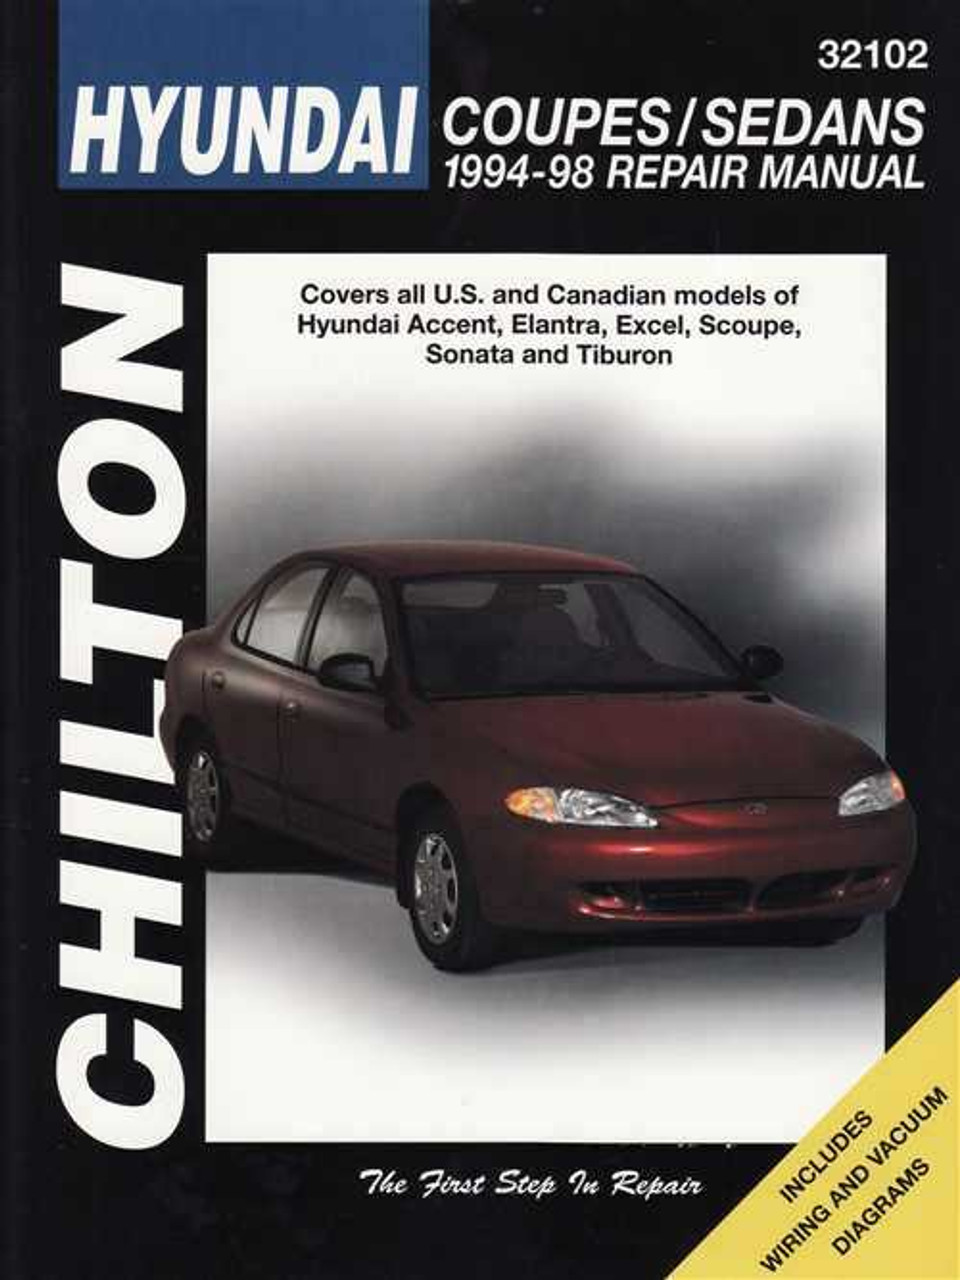 Hyundai service manual img with hyundai service manual stunning hyundai accent elantra excel scoupe sonata workshop manual with hyundai service manual fandeluxe Gallery